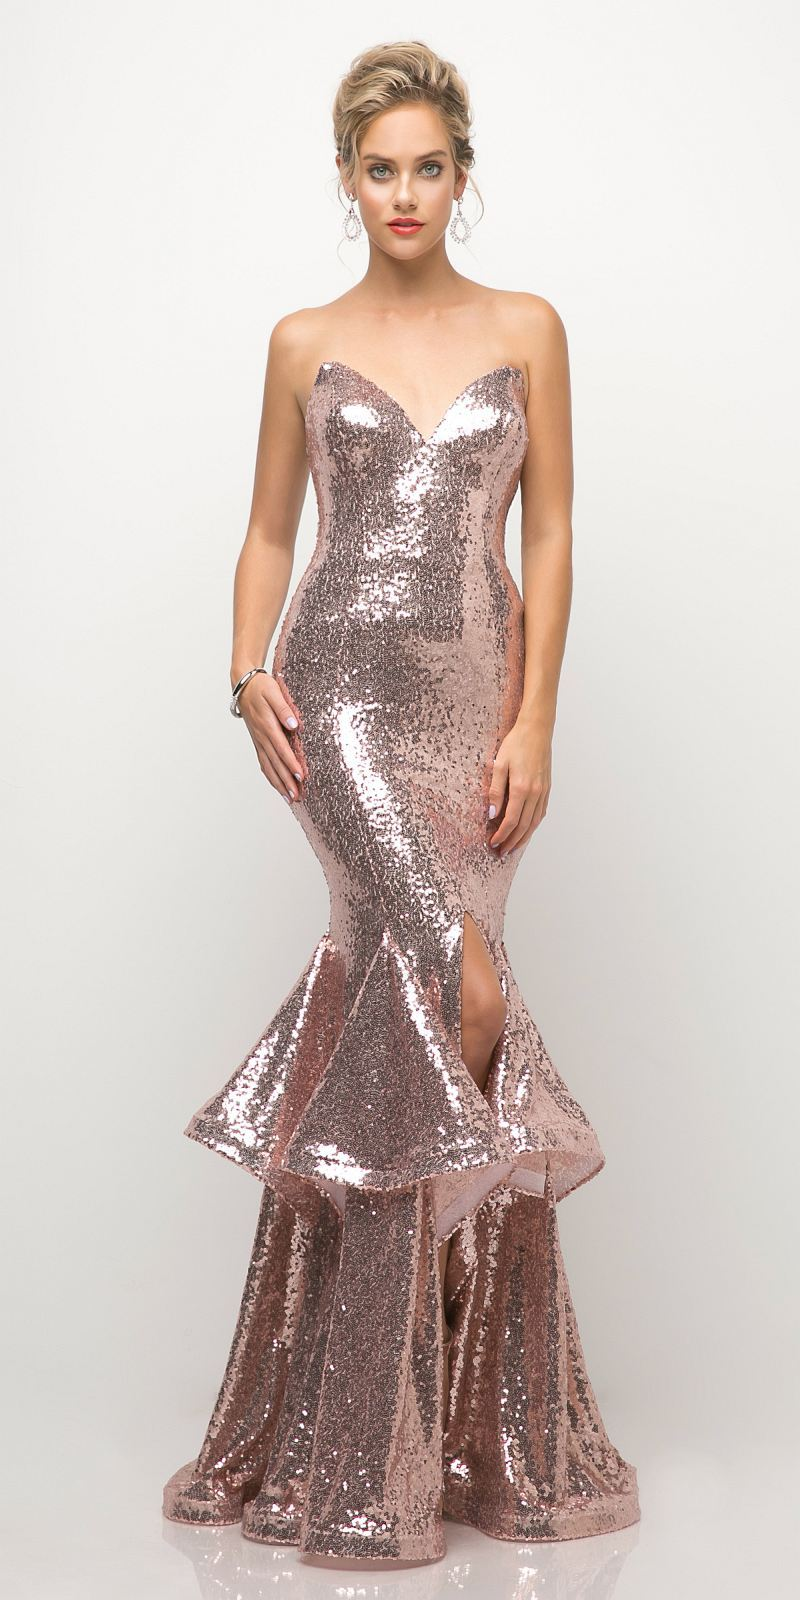 d61125f759b Cinderella Divine UE010 Long Sequin Sheath Mermaid Prom Gown Rose Gold  Strapless ...